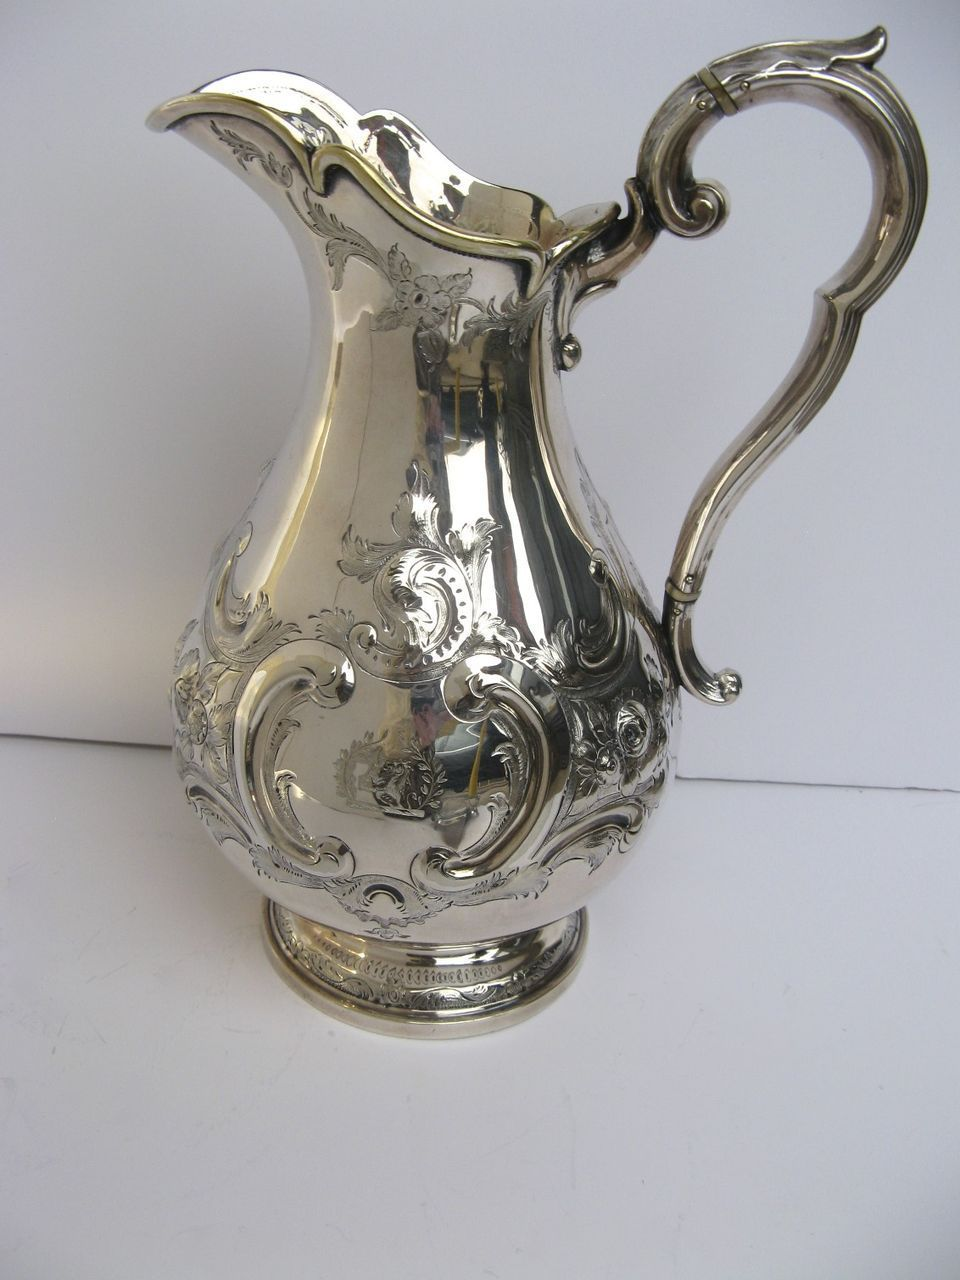 Beautifully Hand Chased Silverplate Pitcher by Martin and Hall